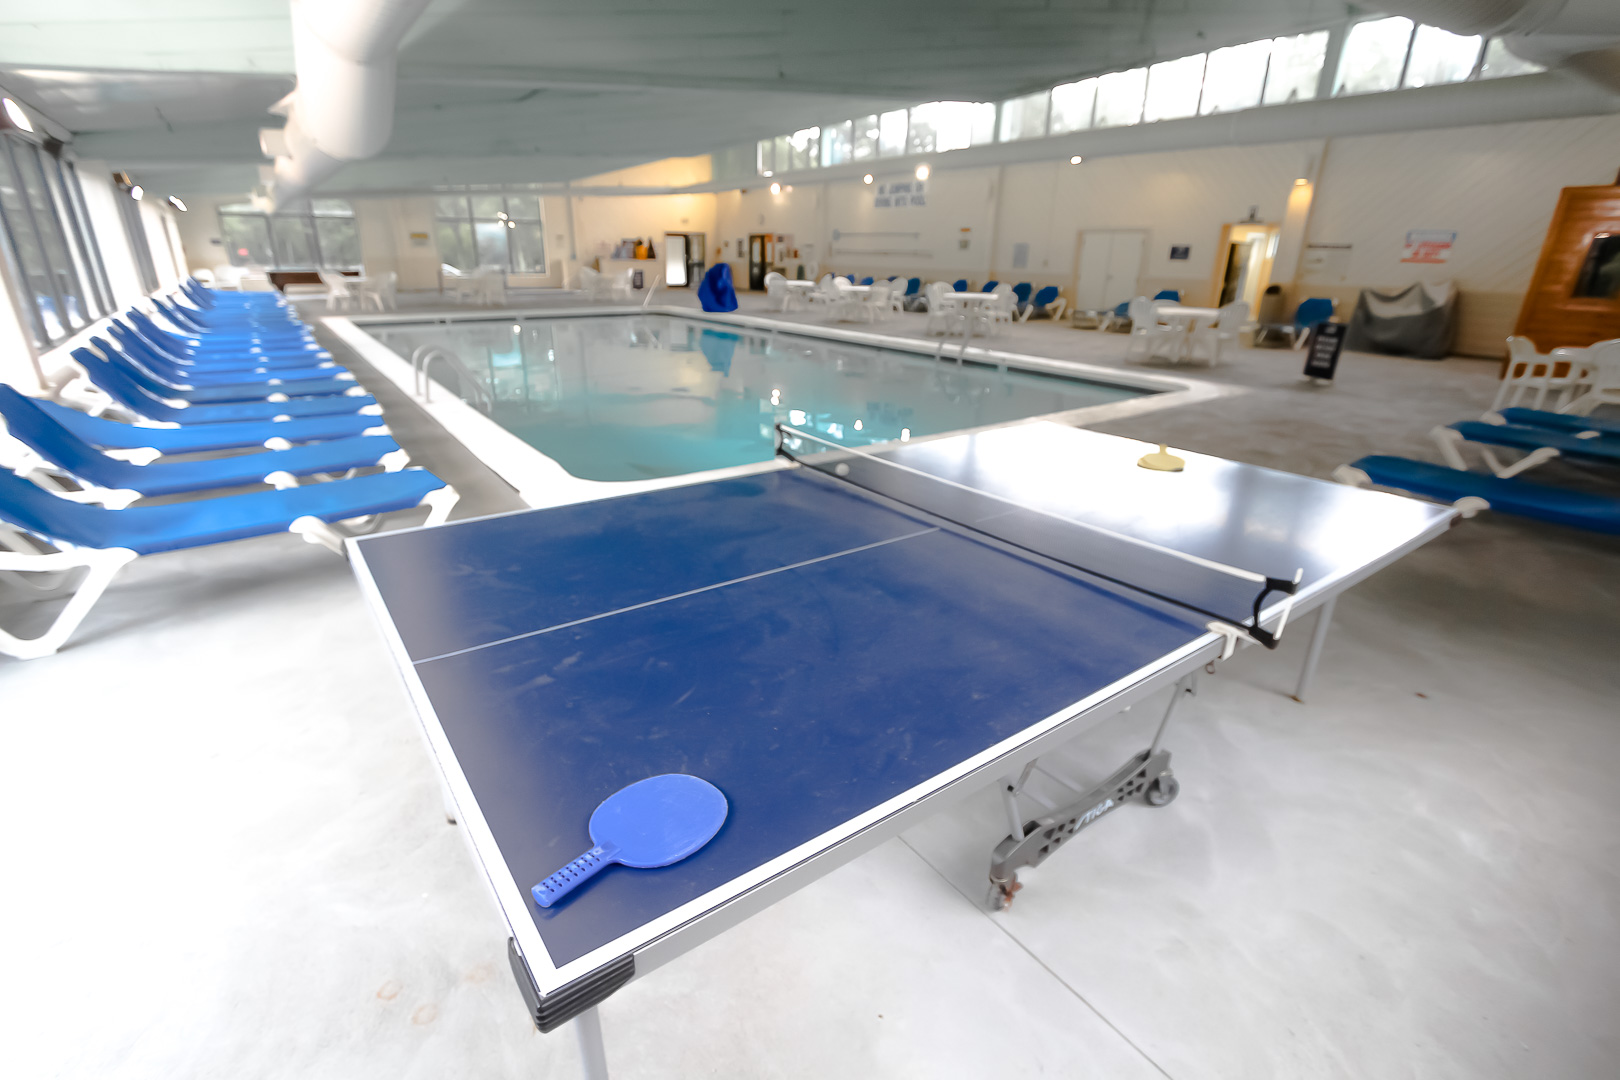 An indoor swimming pool with ping pong table VRI's Sea Mist Resort in Massachusetts.